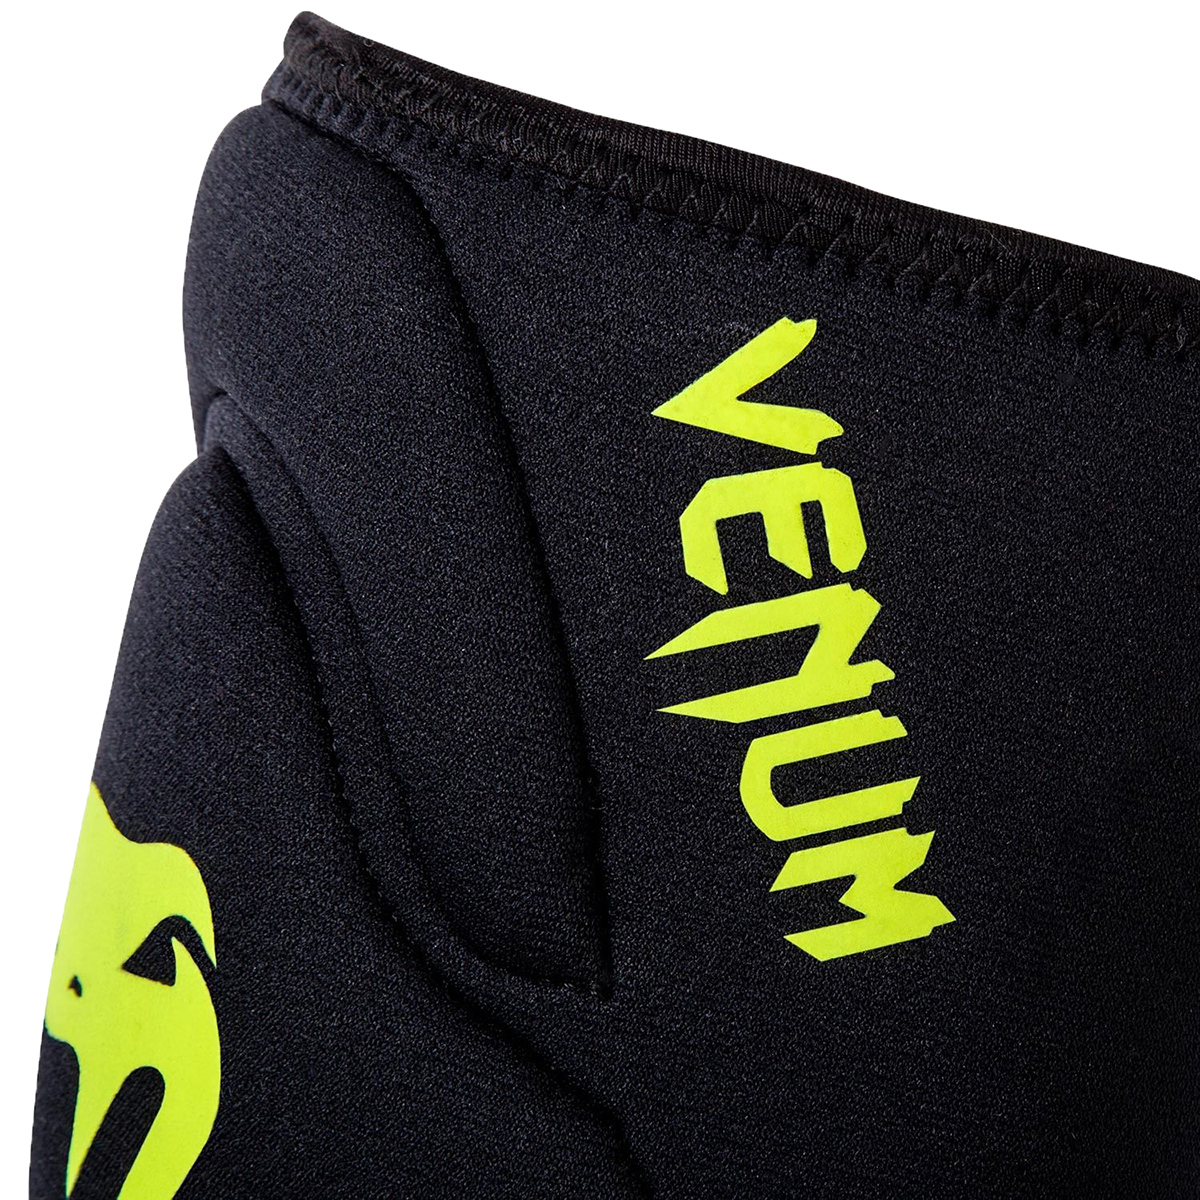 thumbnail 30 - Venum-Kontact-Gel-Shock-System-Protective-MMA-Training-Knee-Pads